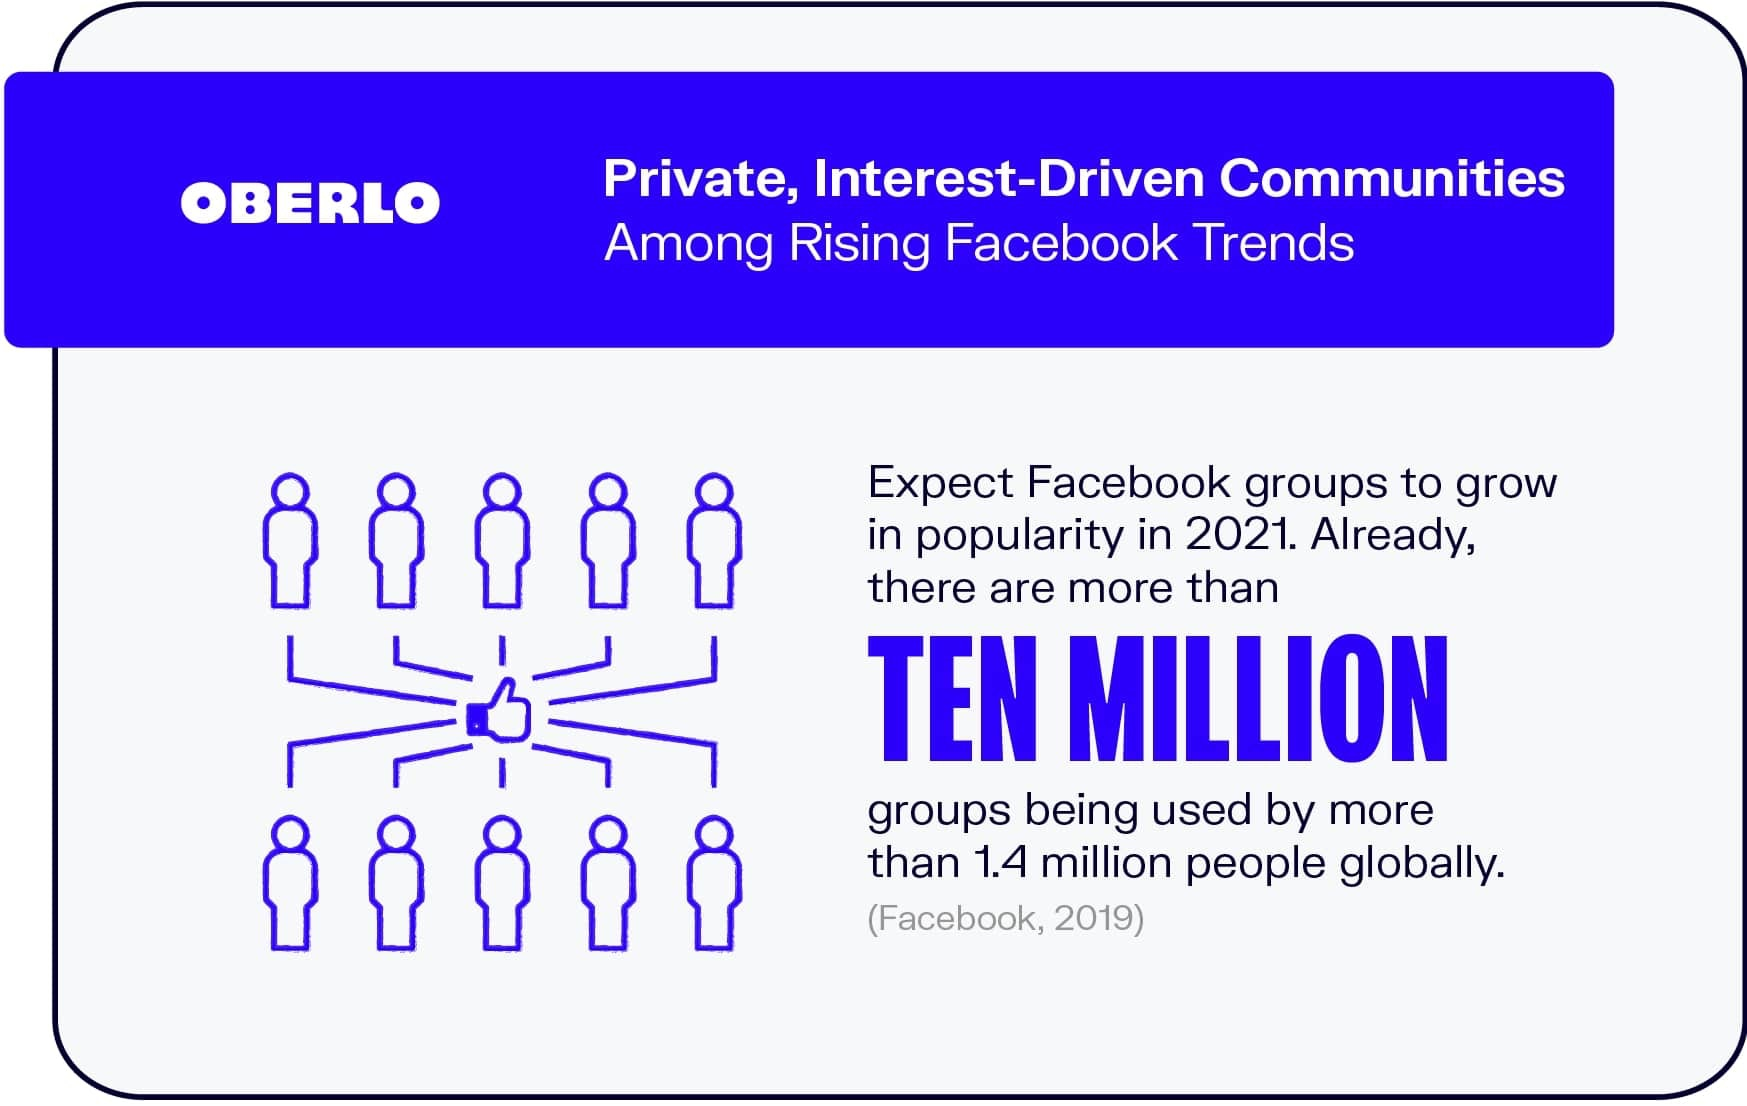 Private, Interest-Driven Communities Among Rising Facebook Trends